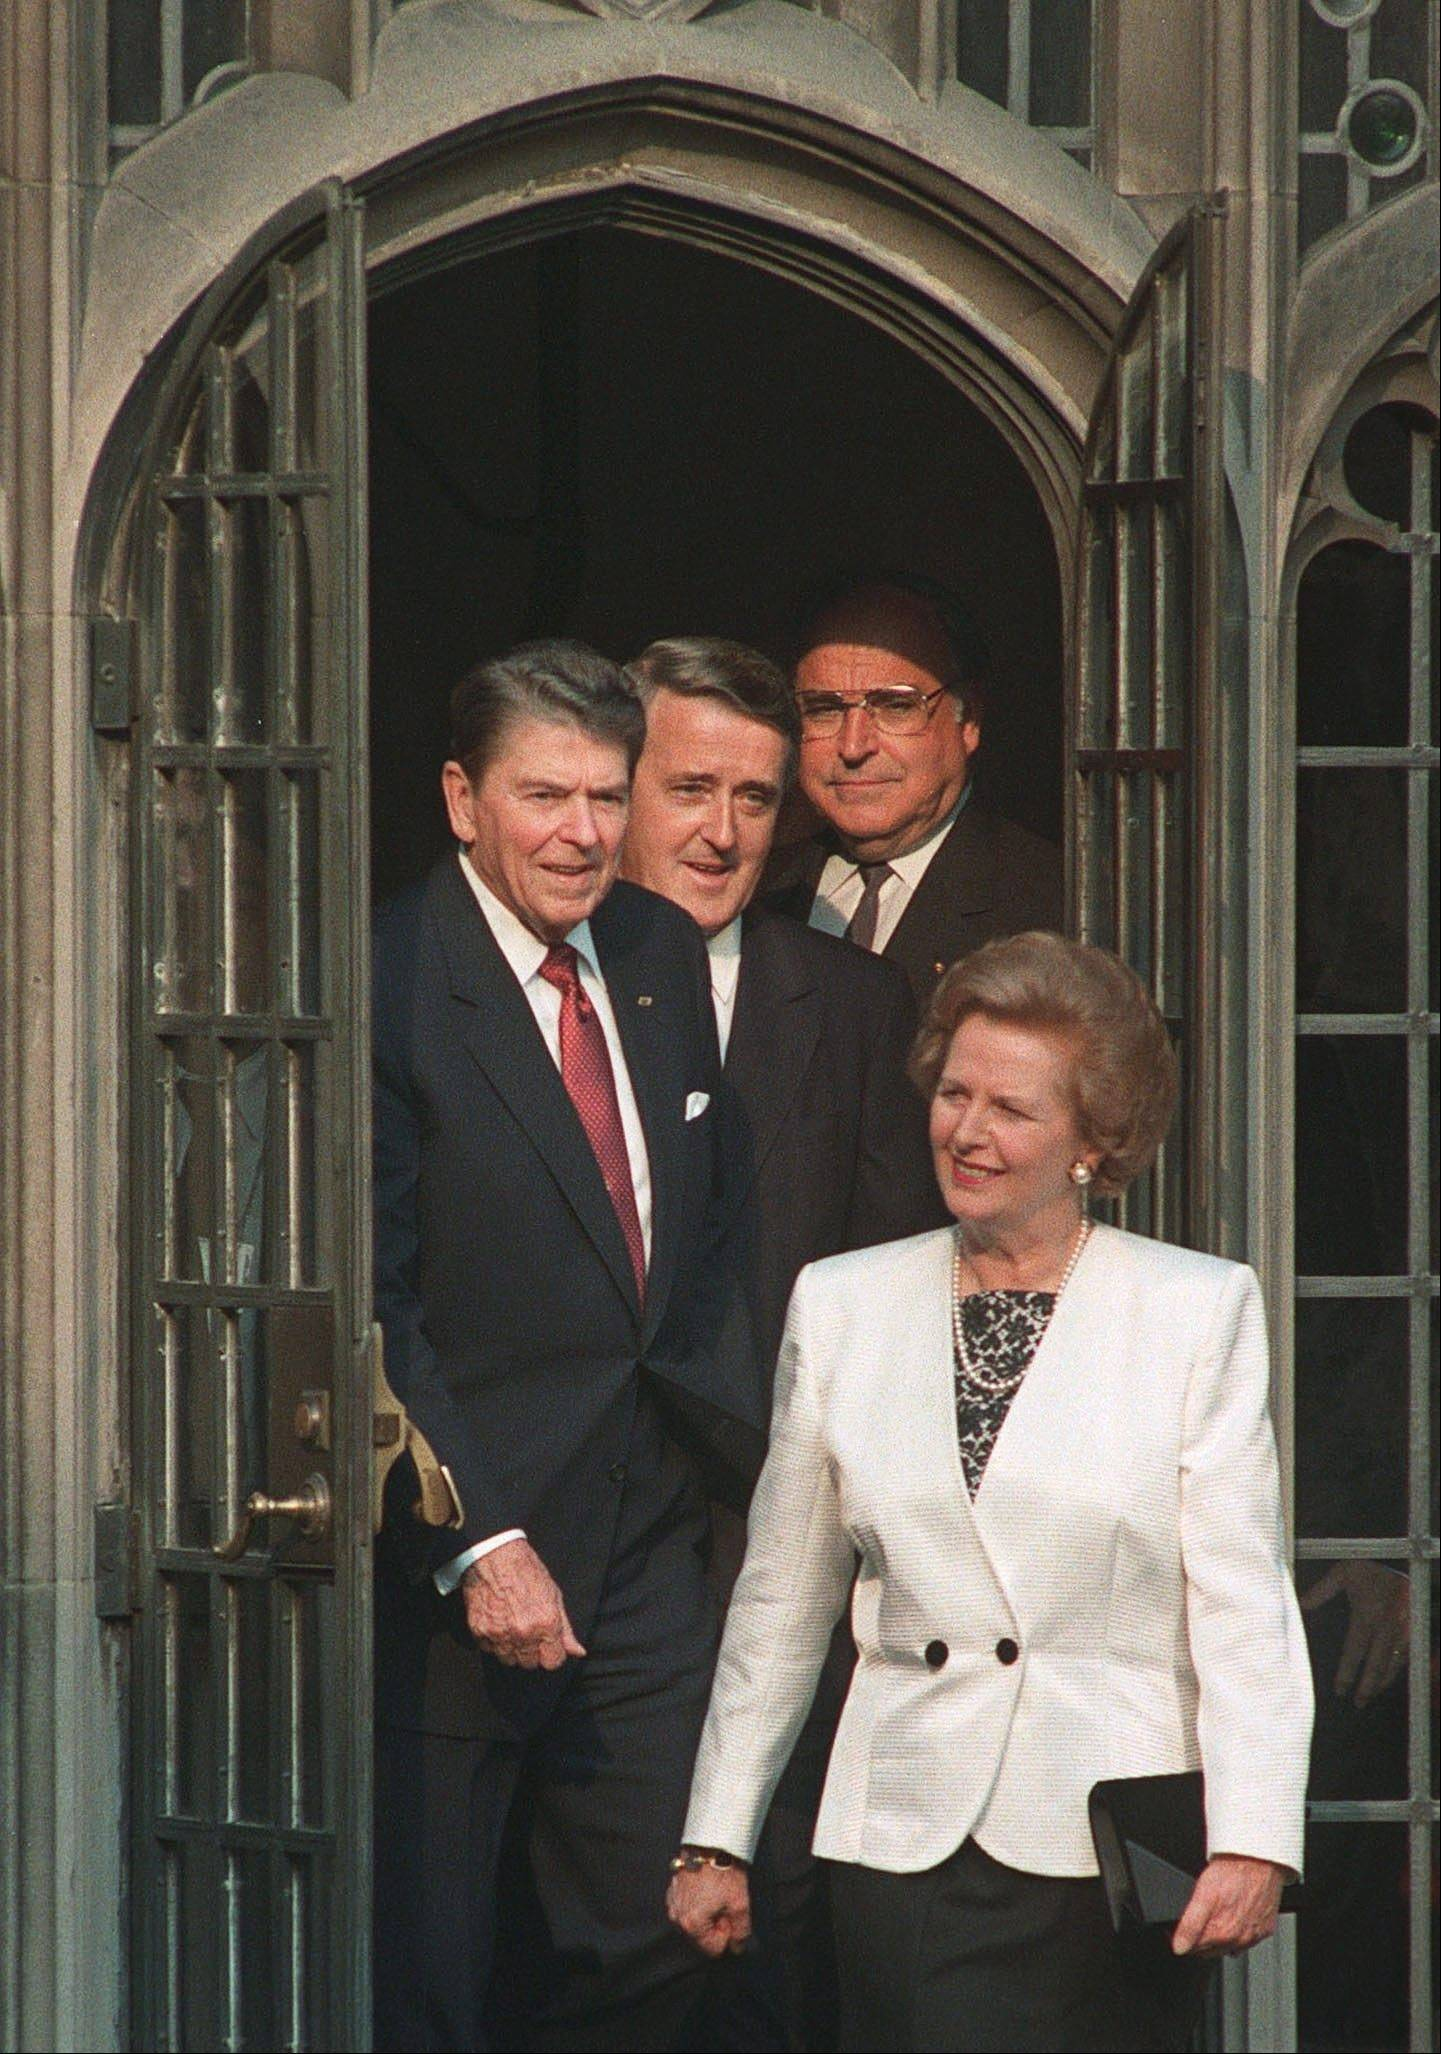 In a June 20, 1988 photo, Economic Summit leaders, from left, President Ronald Reagan, Canadian Prime Minister Brian Mulroney and West German Chancellor Helmut Kohl follow British Prime Minister Margaret Thatcher into a courtyard at Hart House in Toronto. Thatchers former spokesman, Tim Bell, said that the former British Prime Minister Margaret Thatcher had died Monday, April 8, 2013, of a stroke. She was 87.